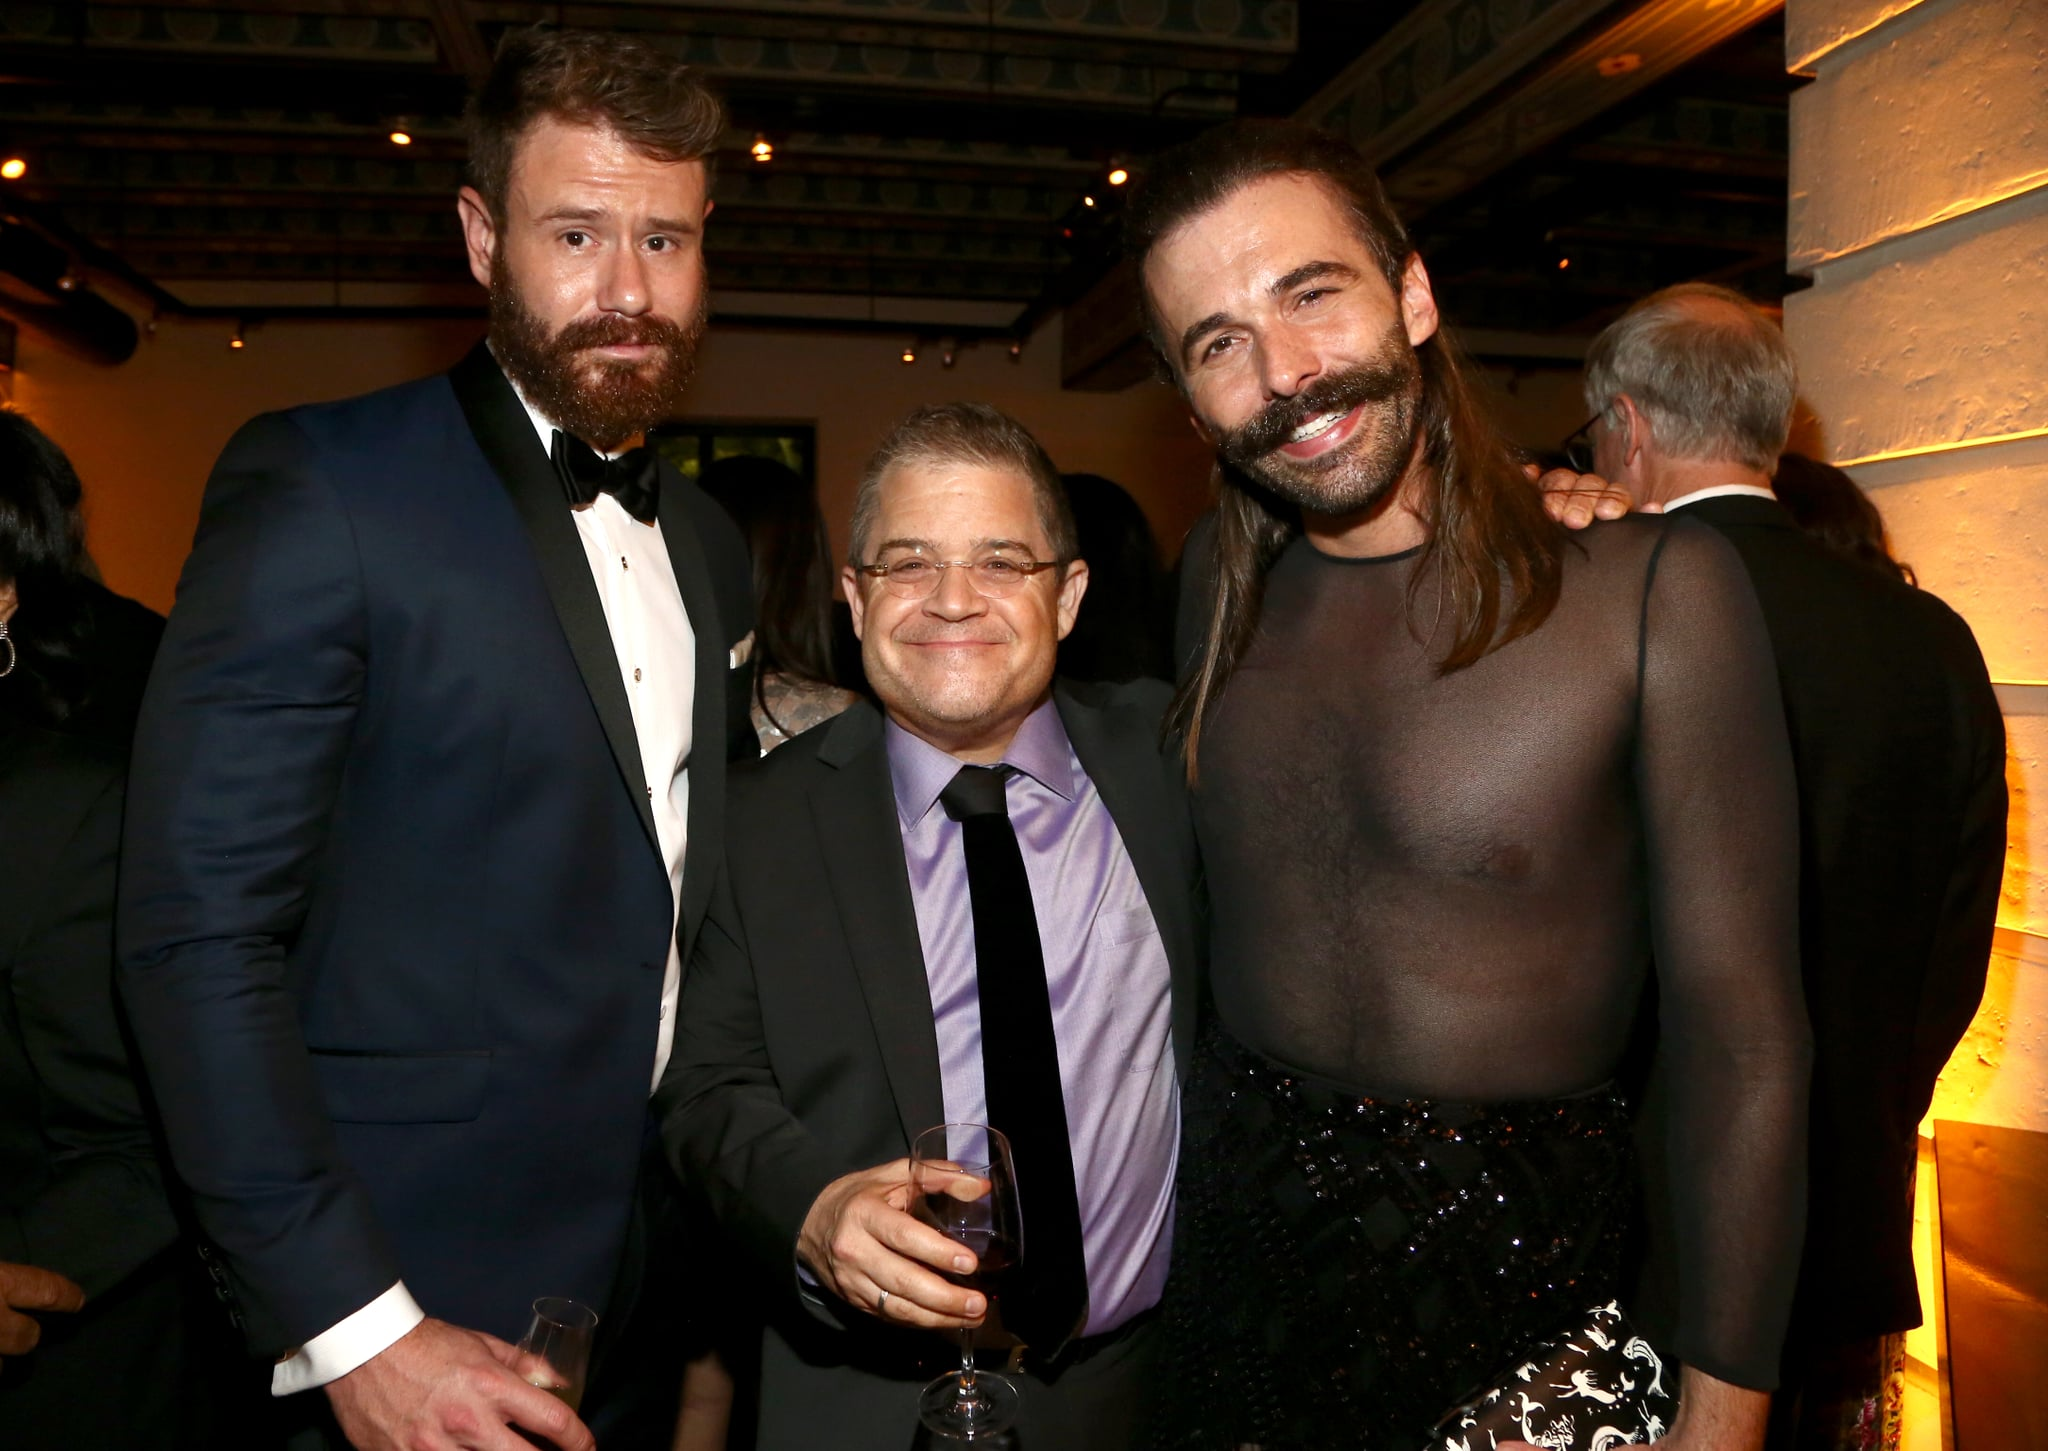 LOS ANGELES, CA - SEPTEMBER 09: Wilco Froneman,  Patton Oswalt and Jonathan Van Ness attend the 2018 Creative Arts Emmy Awards Netflix After Party at redbird on September 9, 2018 in Los Angeles, California.  (Photo by Tommaso Boddi/Getty Images for Netflix)